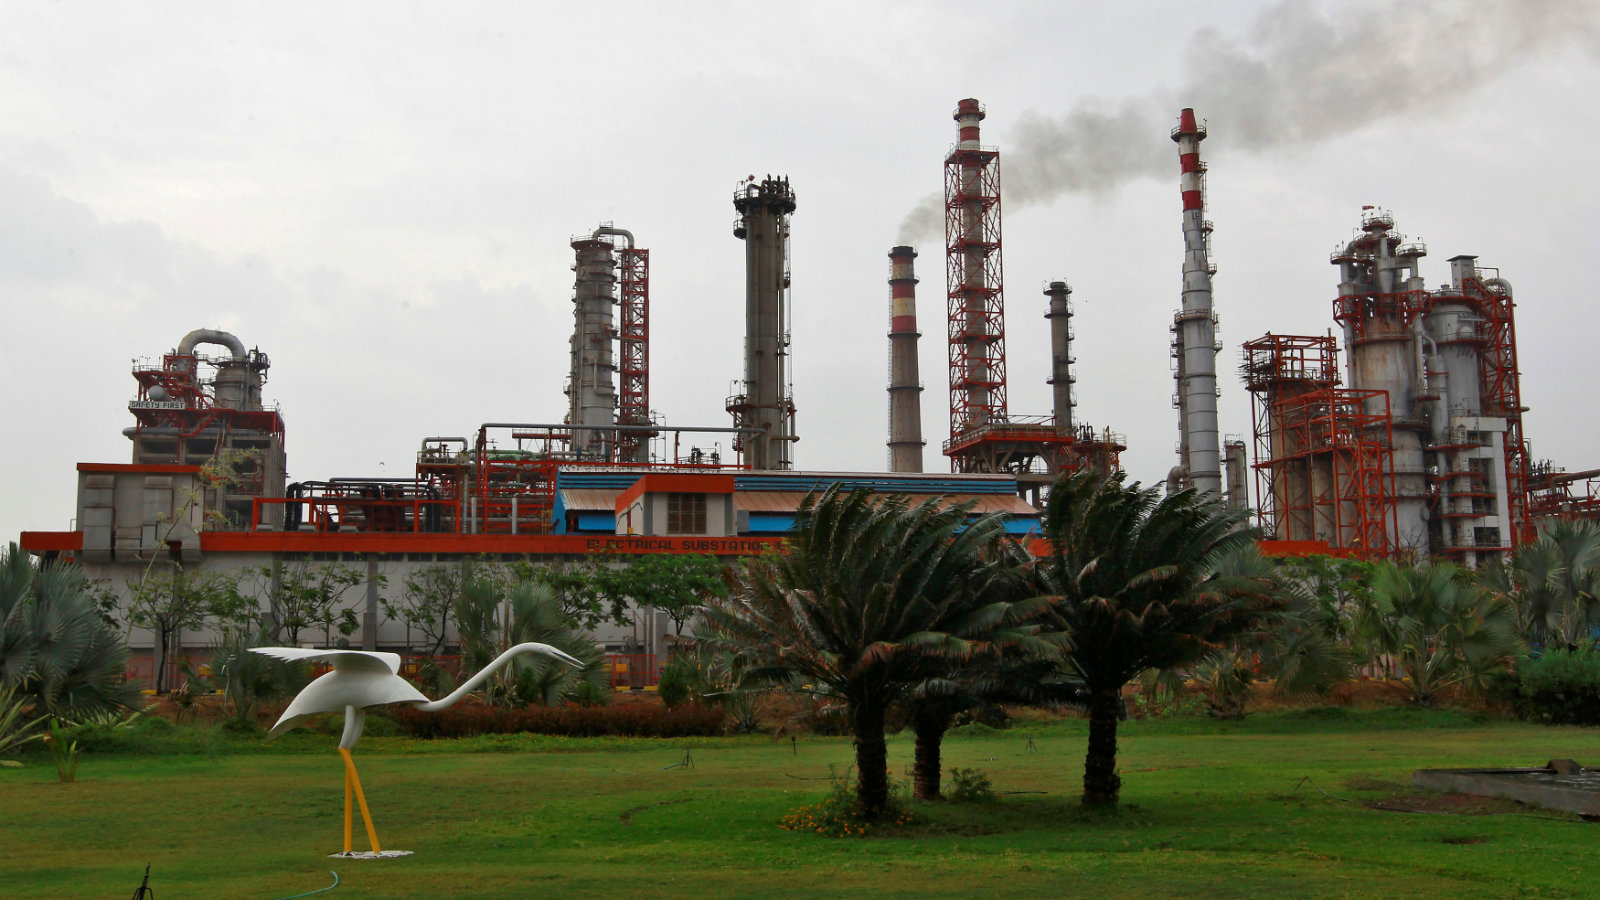 An oil refinery of Essar Oil, which runs India's second biggest private sector refinery, is pictured in Vadinar in the western state of Gujarat, India, October 4, 2016. Picture taken October 4, 2016.